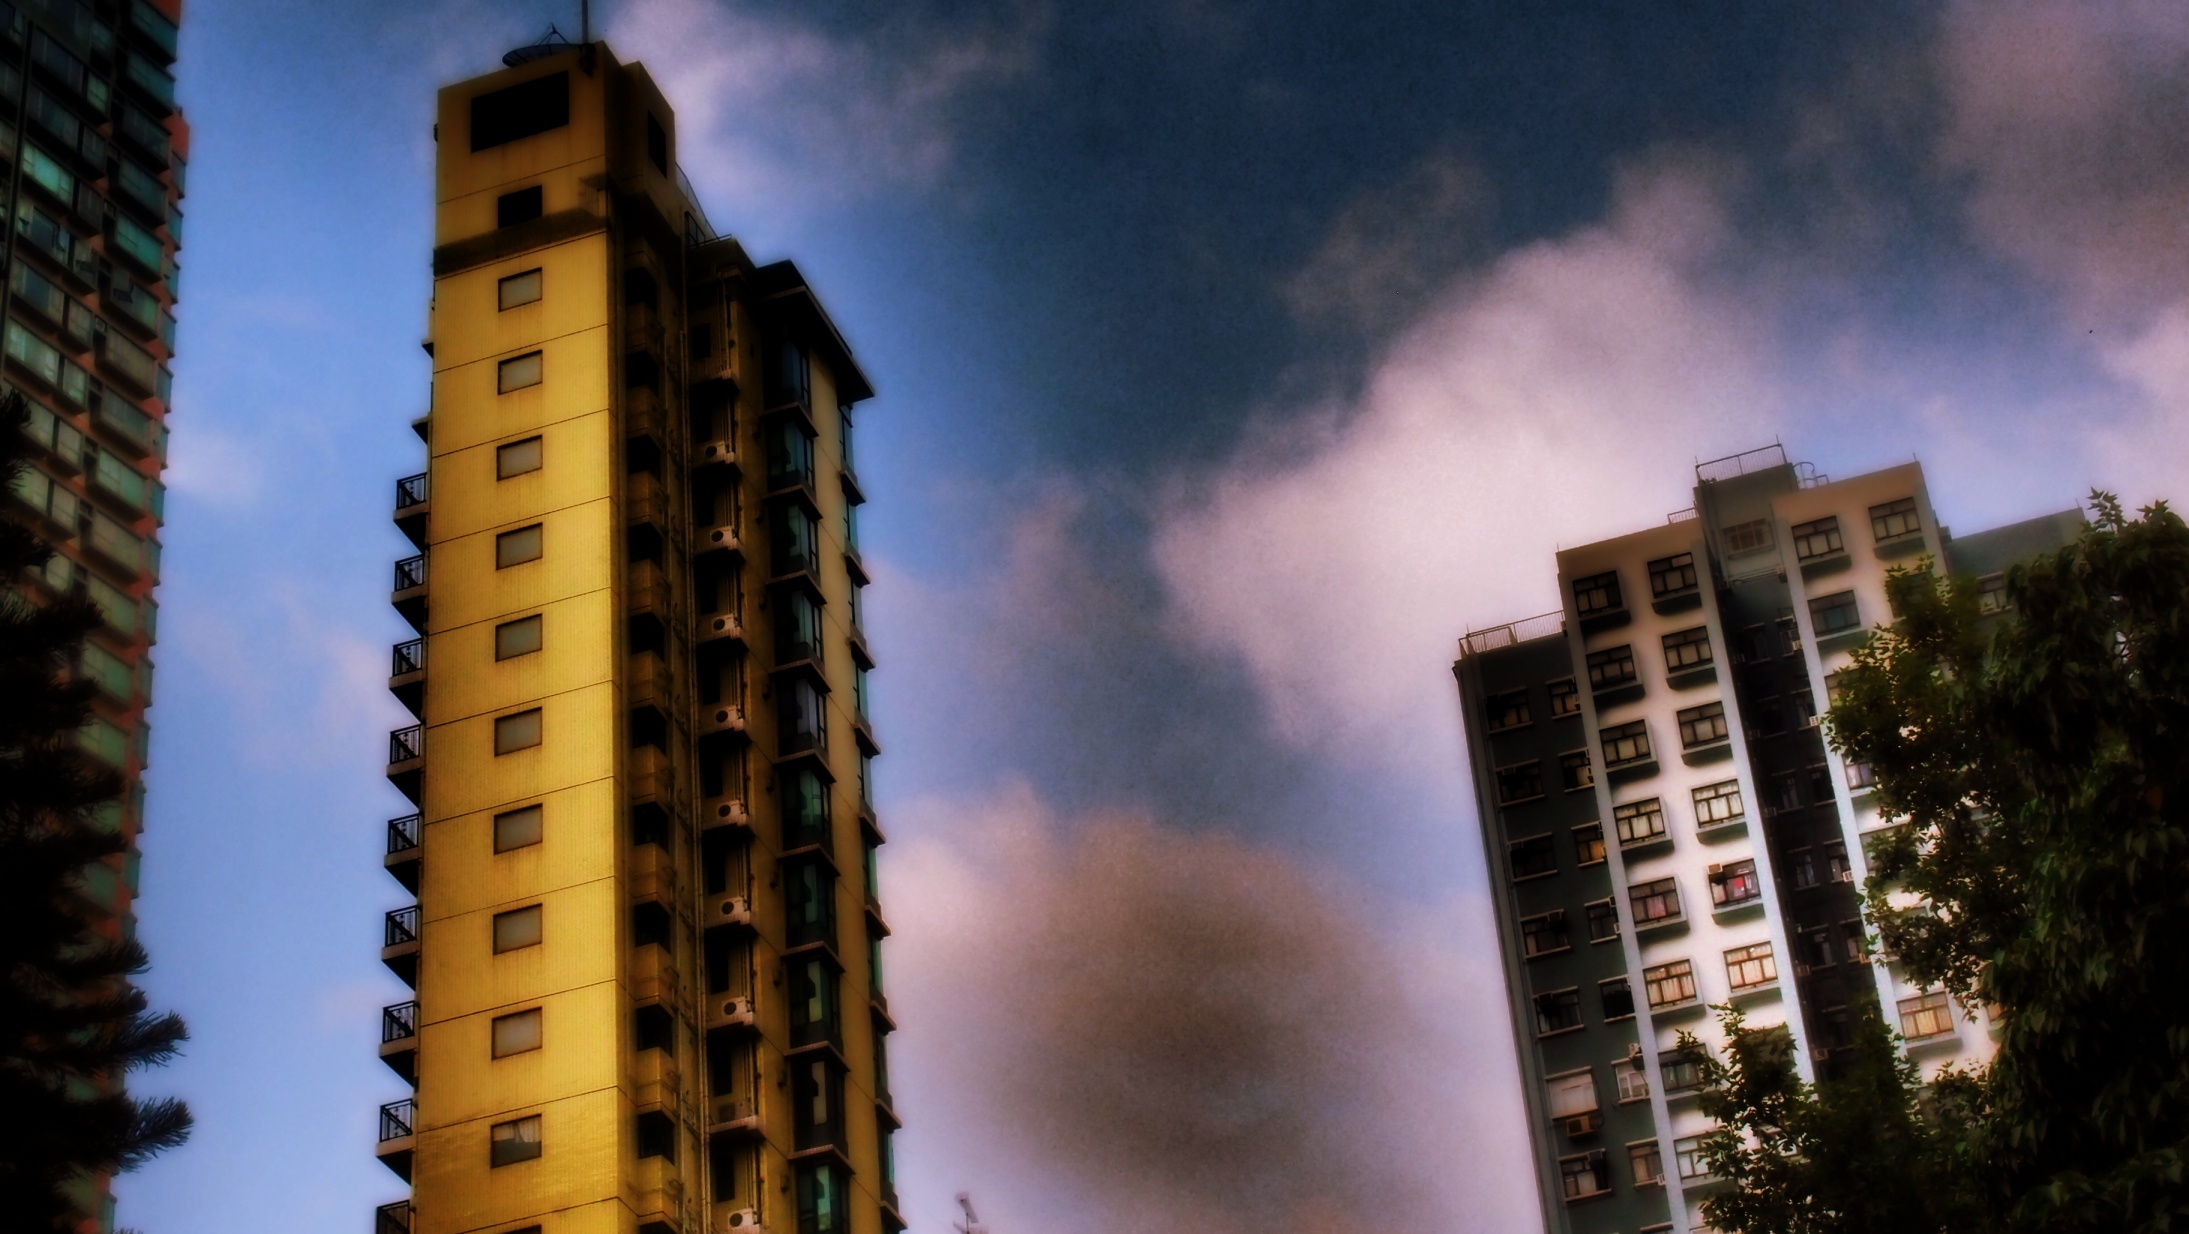 A moody atmospheric shot of buildings at the Western end of Hollywood Road